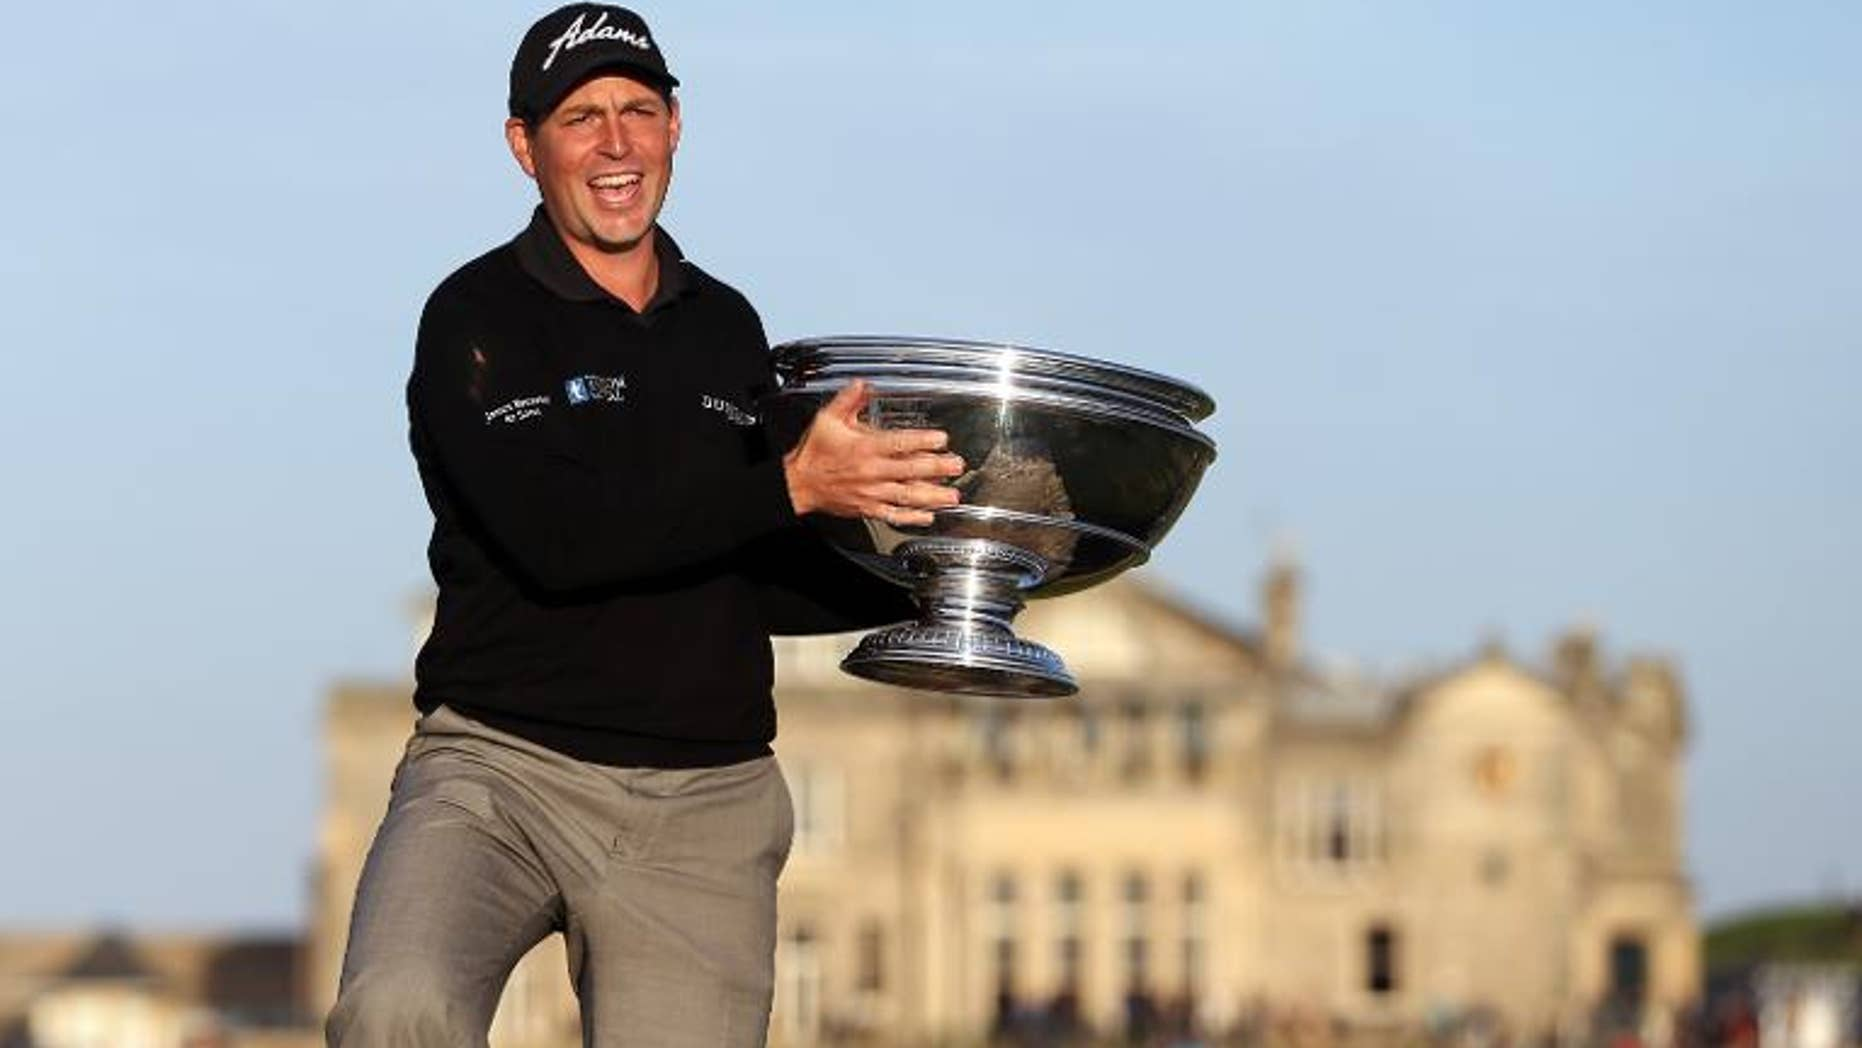 English golfer David Howell poses on the Swilcan Bridge with the trophy after winning the The Alfred Dunhill Links Championships golf competition on The Old Course at St Andrews, Fife, Scotland on September 29, 2013.